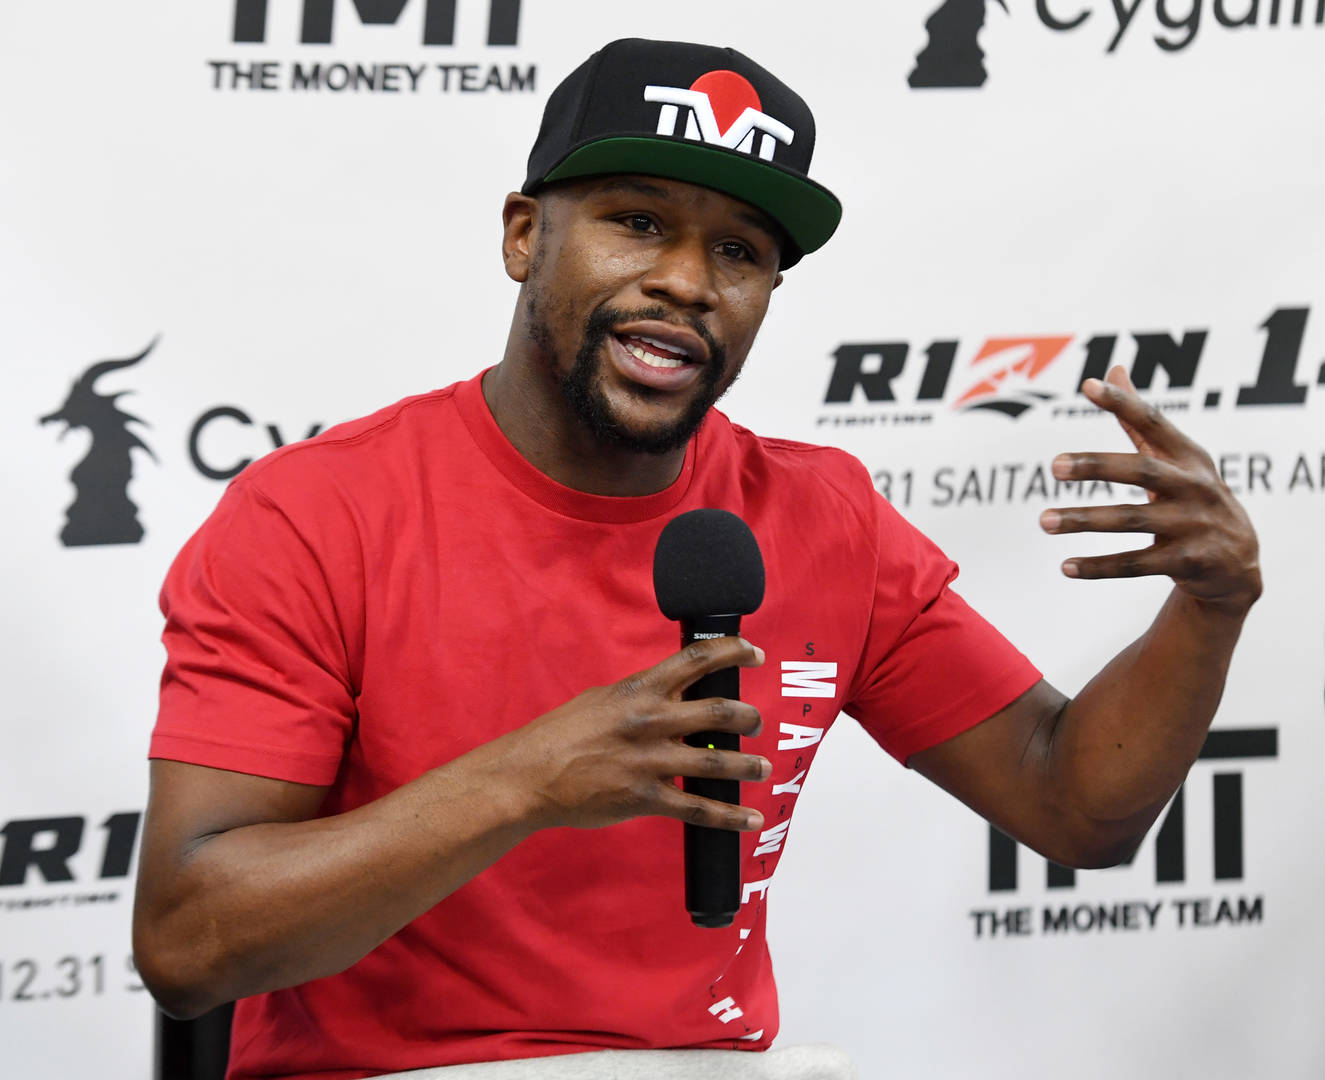 Floyd Mayweather bike mask social distancing entourage quarantine isolation coronavirus